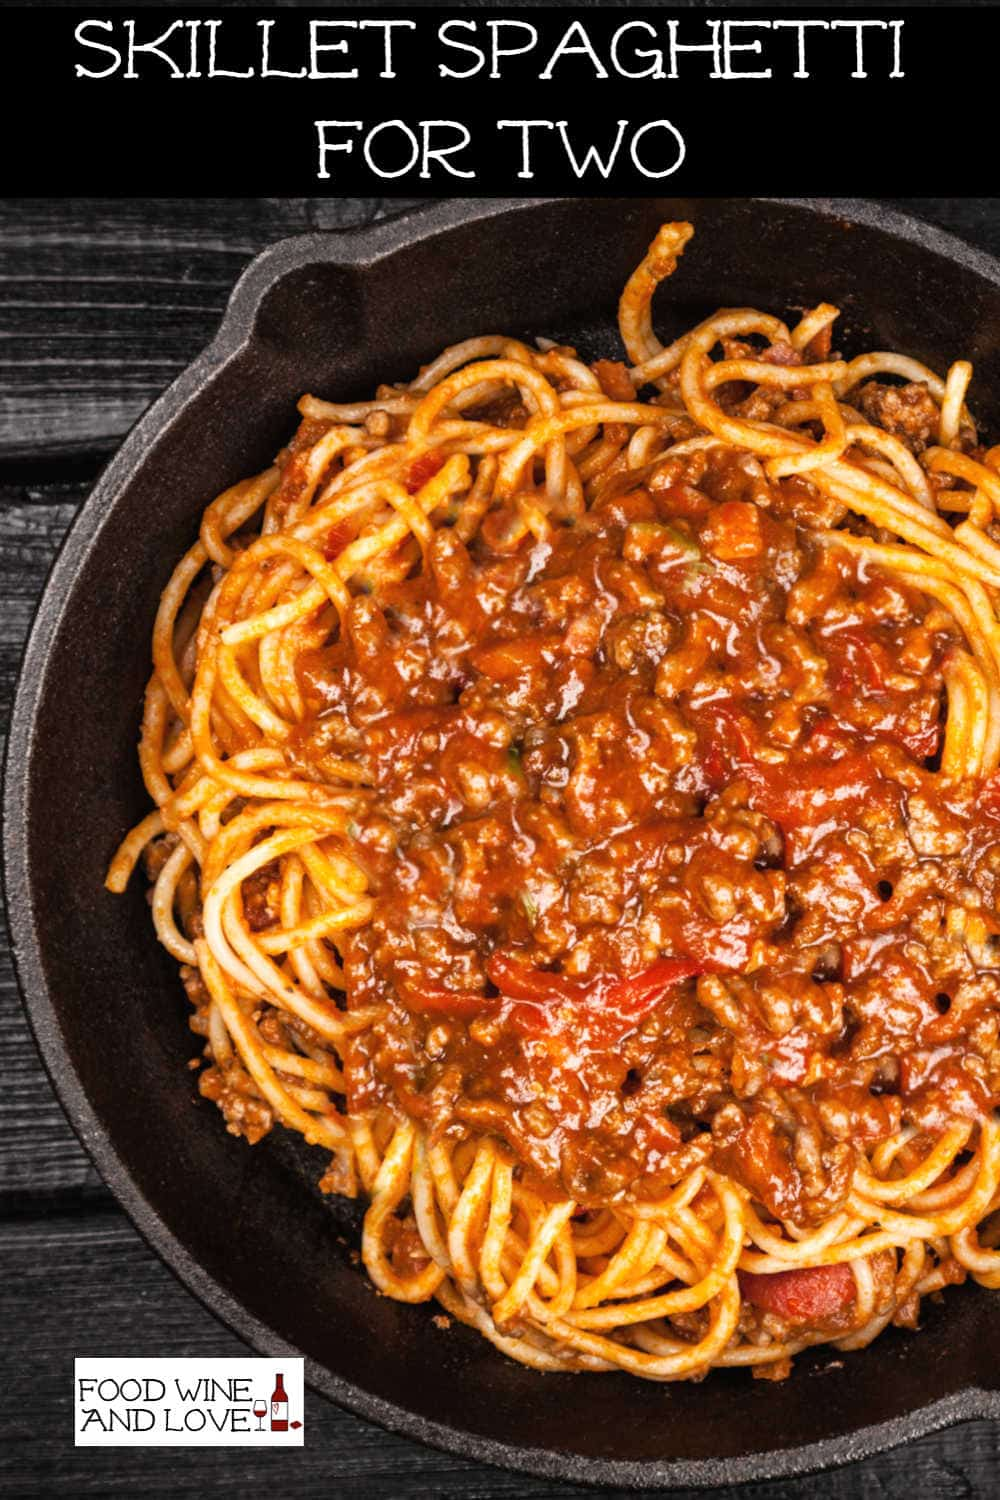 Skillet Spaghetti For Two